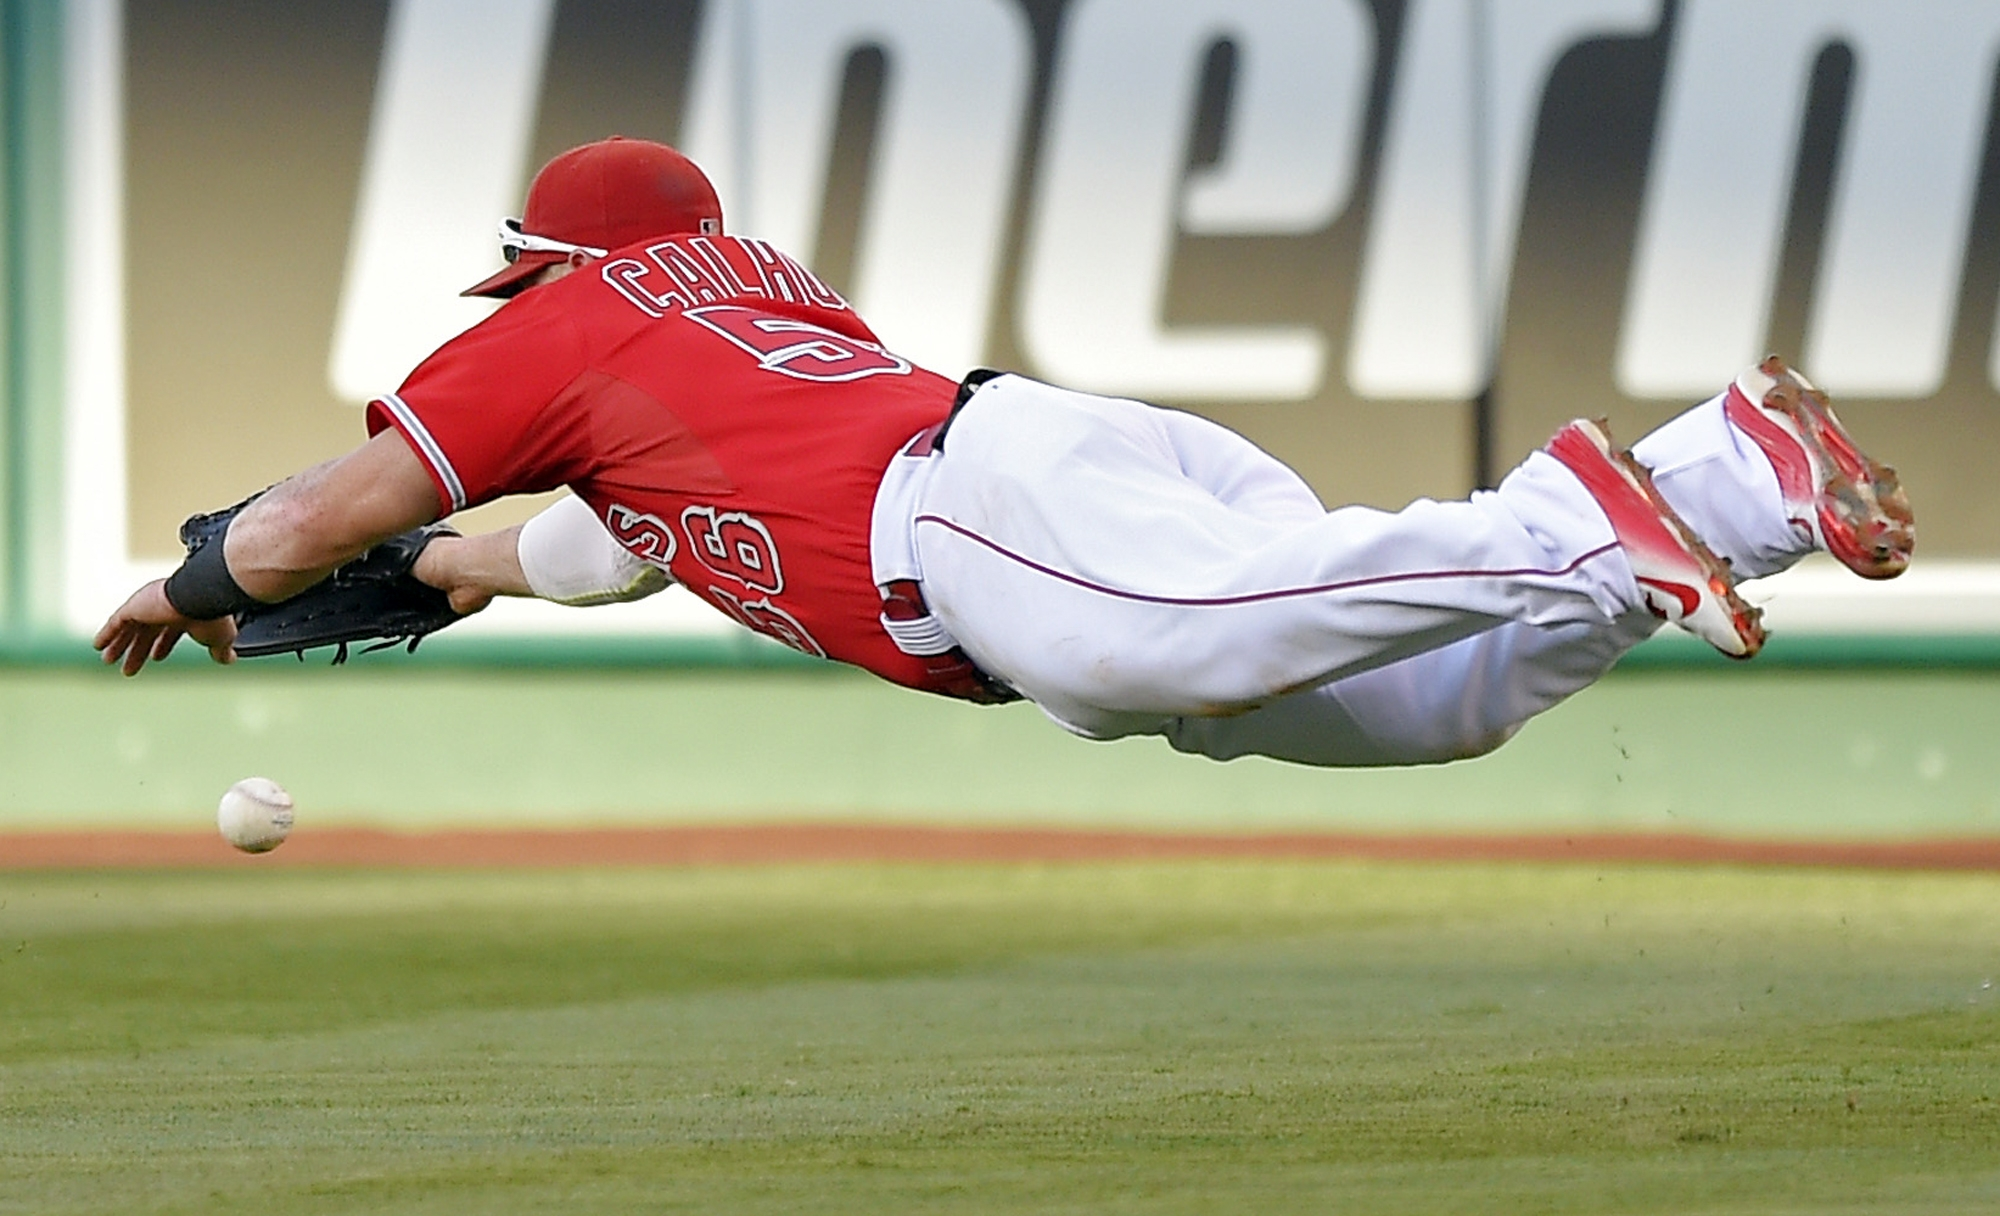 Los Angeles Angels right fielder Kole Calhoun cannot reach a ball hit for a double by Baltimore Orioles' J.J. Hardy during the second inning of a baseball game, Saturday, Aug. 8, 2015, in Anaheim, Calif. (AP Photo/Mark J. Terrill)